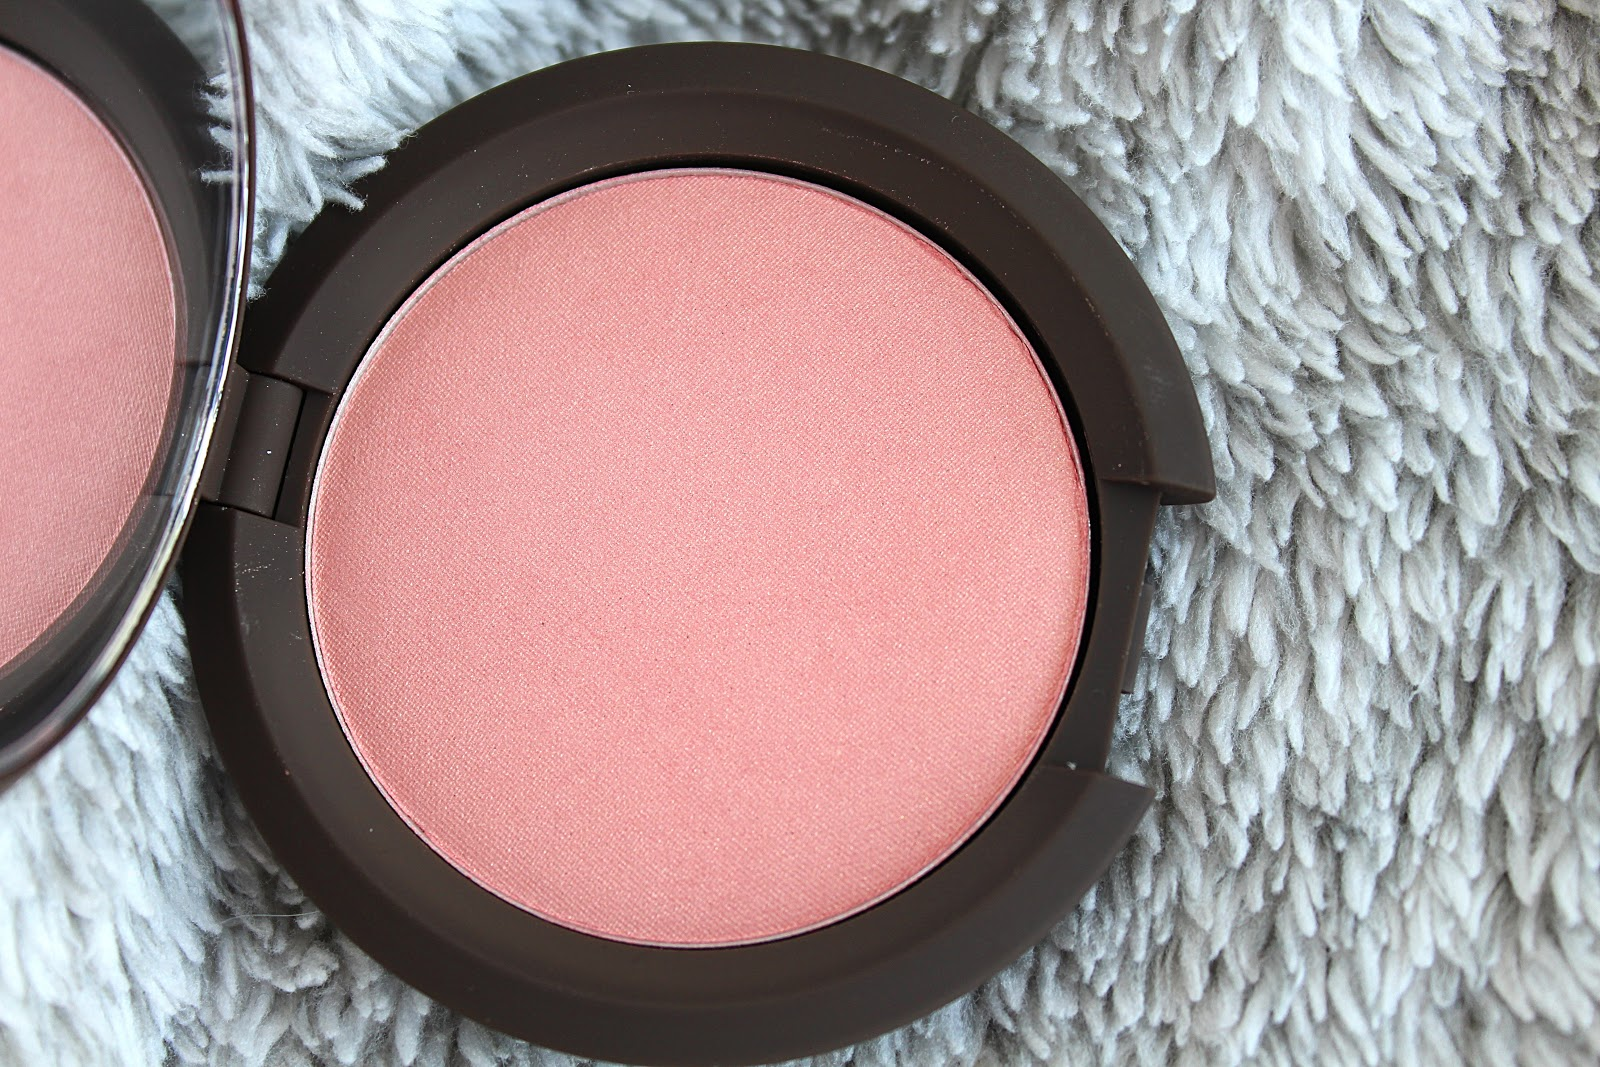 BECCA Flowerchild Blush Review | Life in Excess